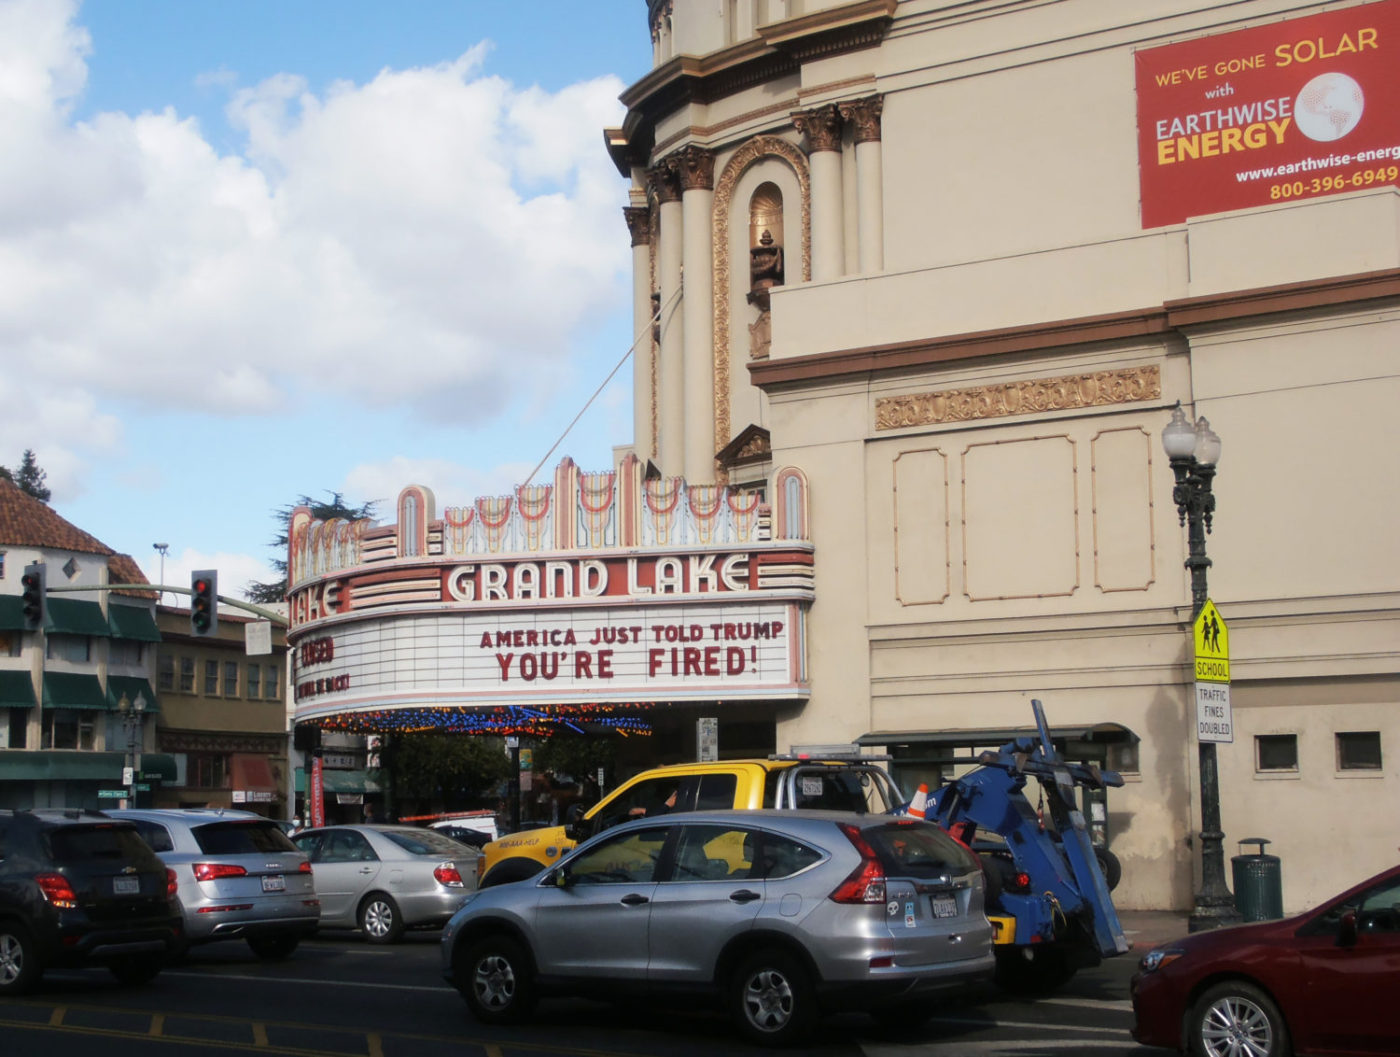 Grand-Lake-Theater-marquee-Fired-re-Trump-1220-by-Jahahara-1400x1057, Change the name of the 'White' House! Change this oppressive system!, Culture Currents